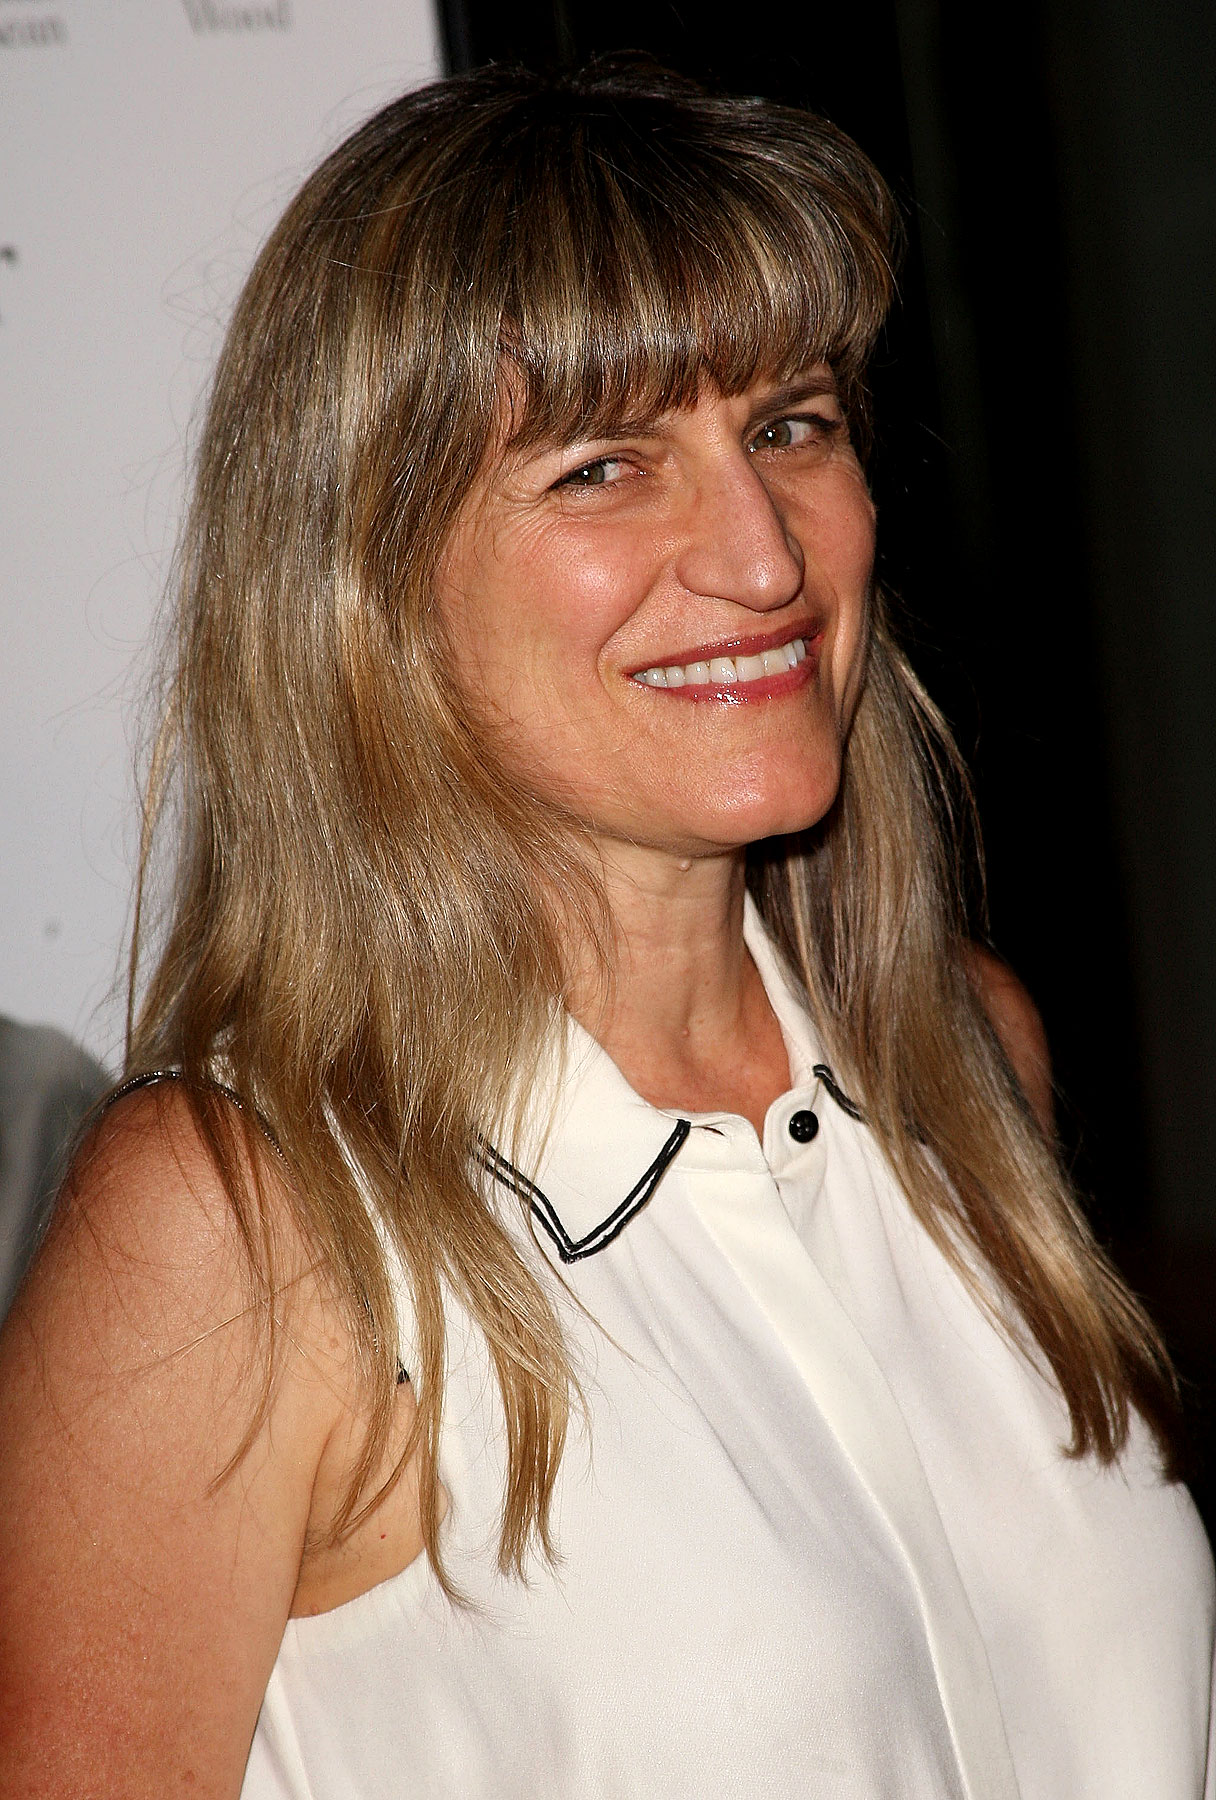 Catherine Hardwicke Wishes On 'Twilight' Stars For New Films